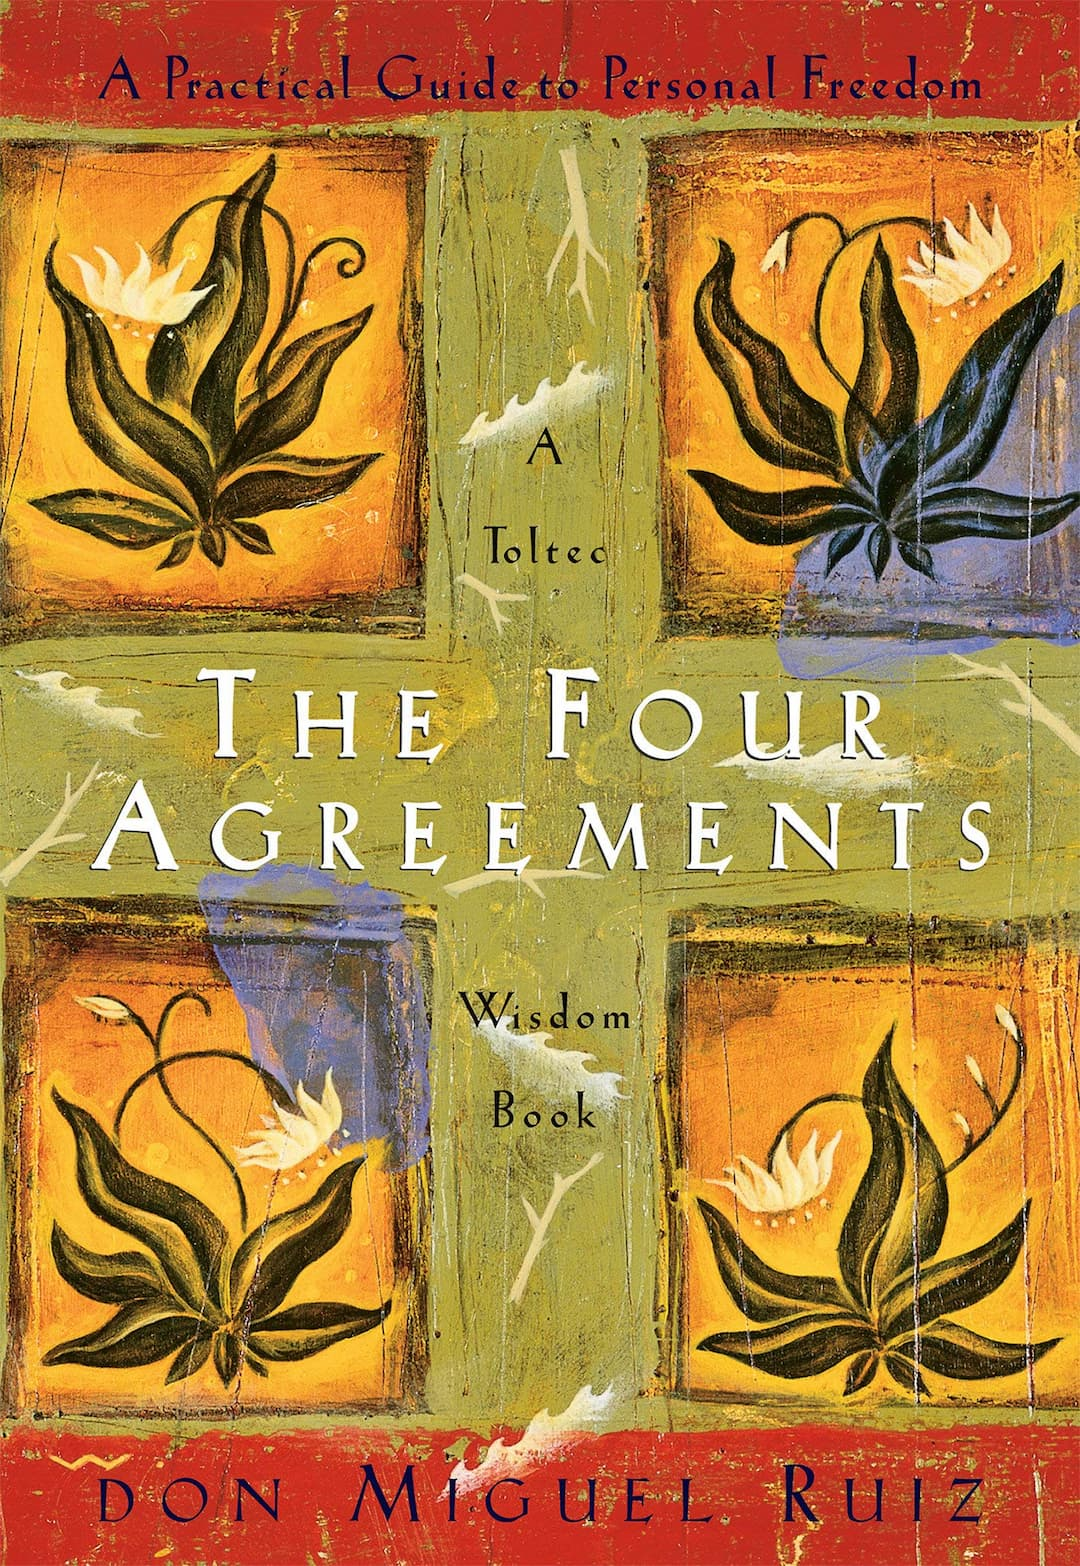 The Four Agreements by Don Miguel Ruiz: Self happiness and pleasure of life are the main focus of human life. Every person, small or big, rich or poor, man or woman is in search of contented and satisfactory life upon this planet.